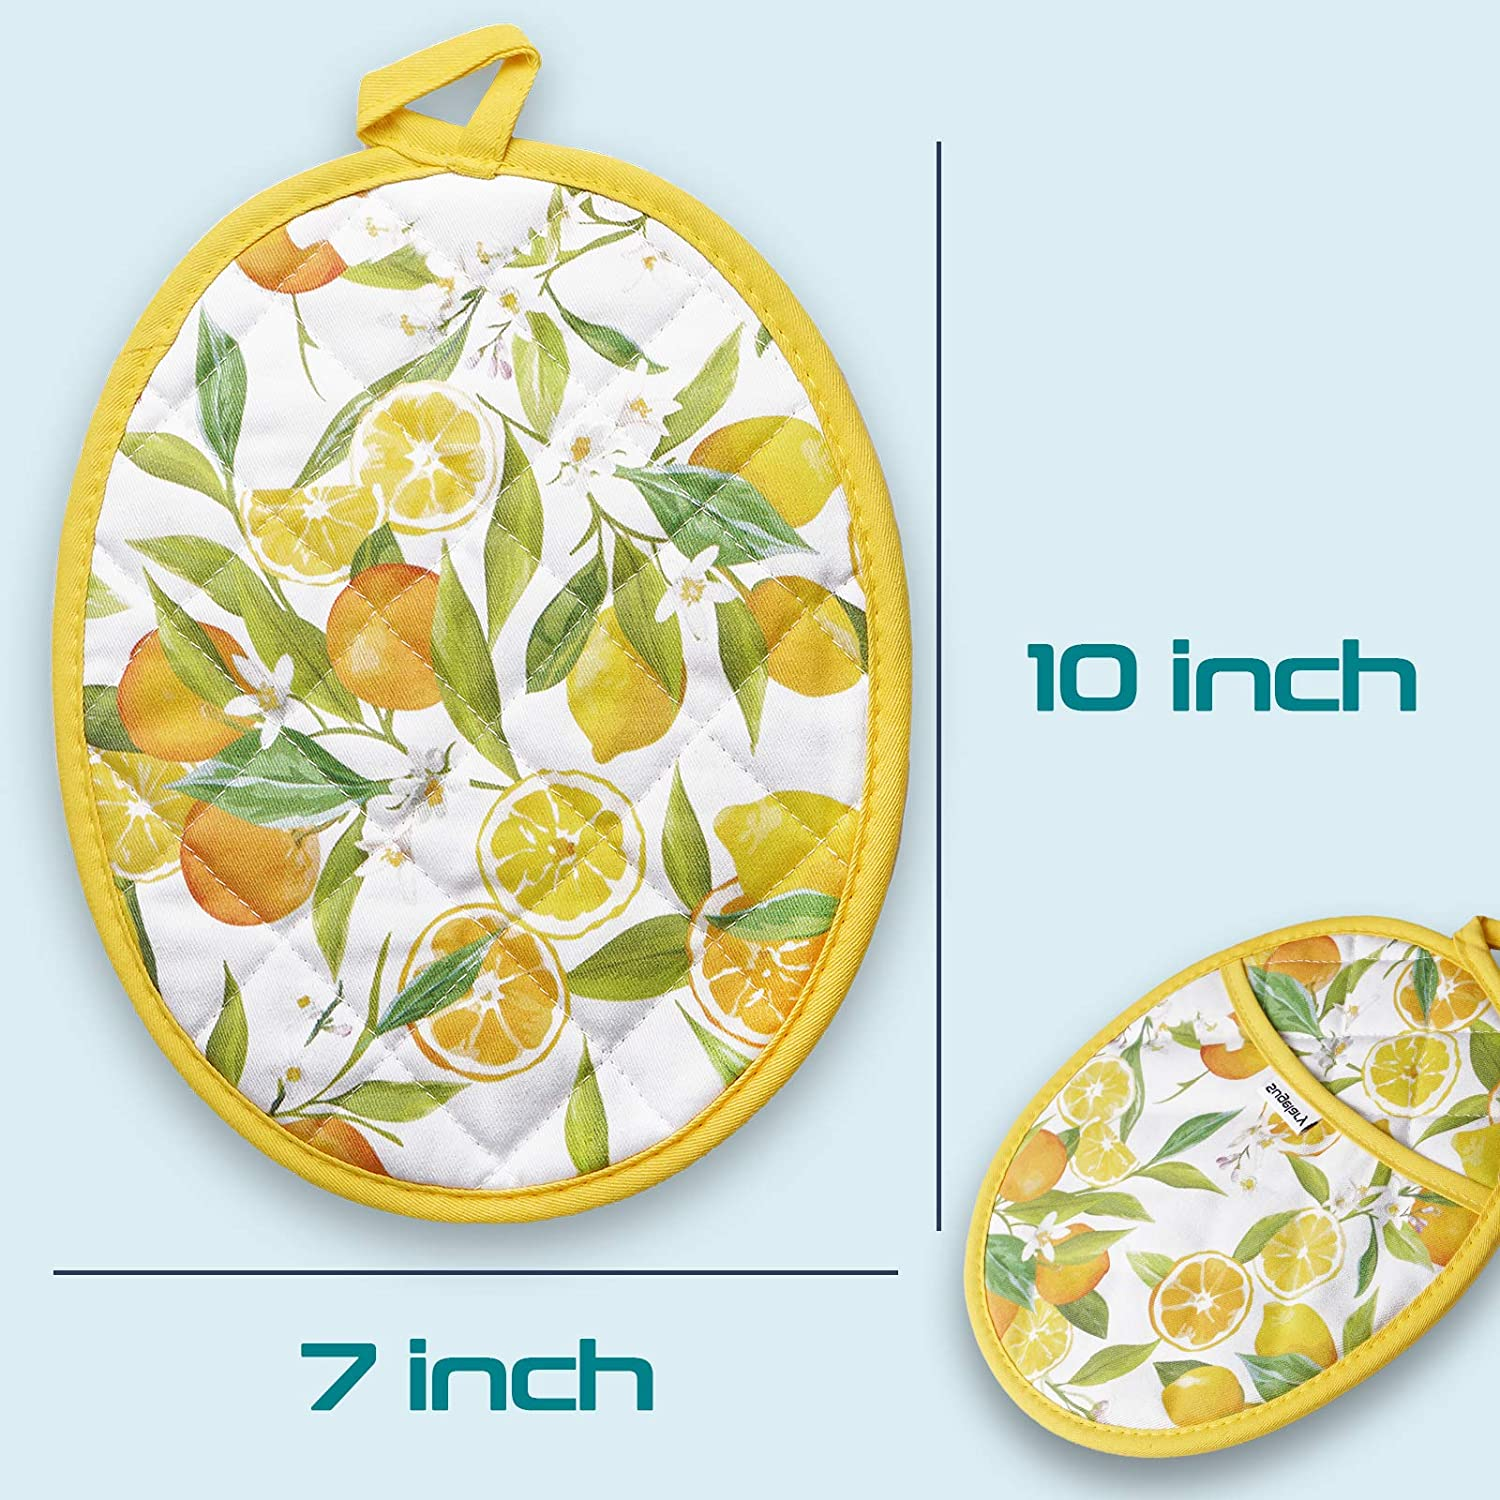 8/'/'10/'/' Potholders with Pockets and Hanging Loop Baking Cooking Yellow Sugelary Pot Holders Heat Resistant up to 500F Hot Pads Orange Machine Washable Pot Holders for Kitchen